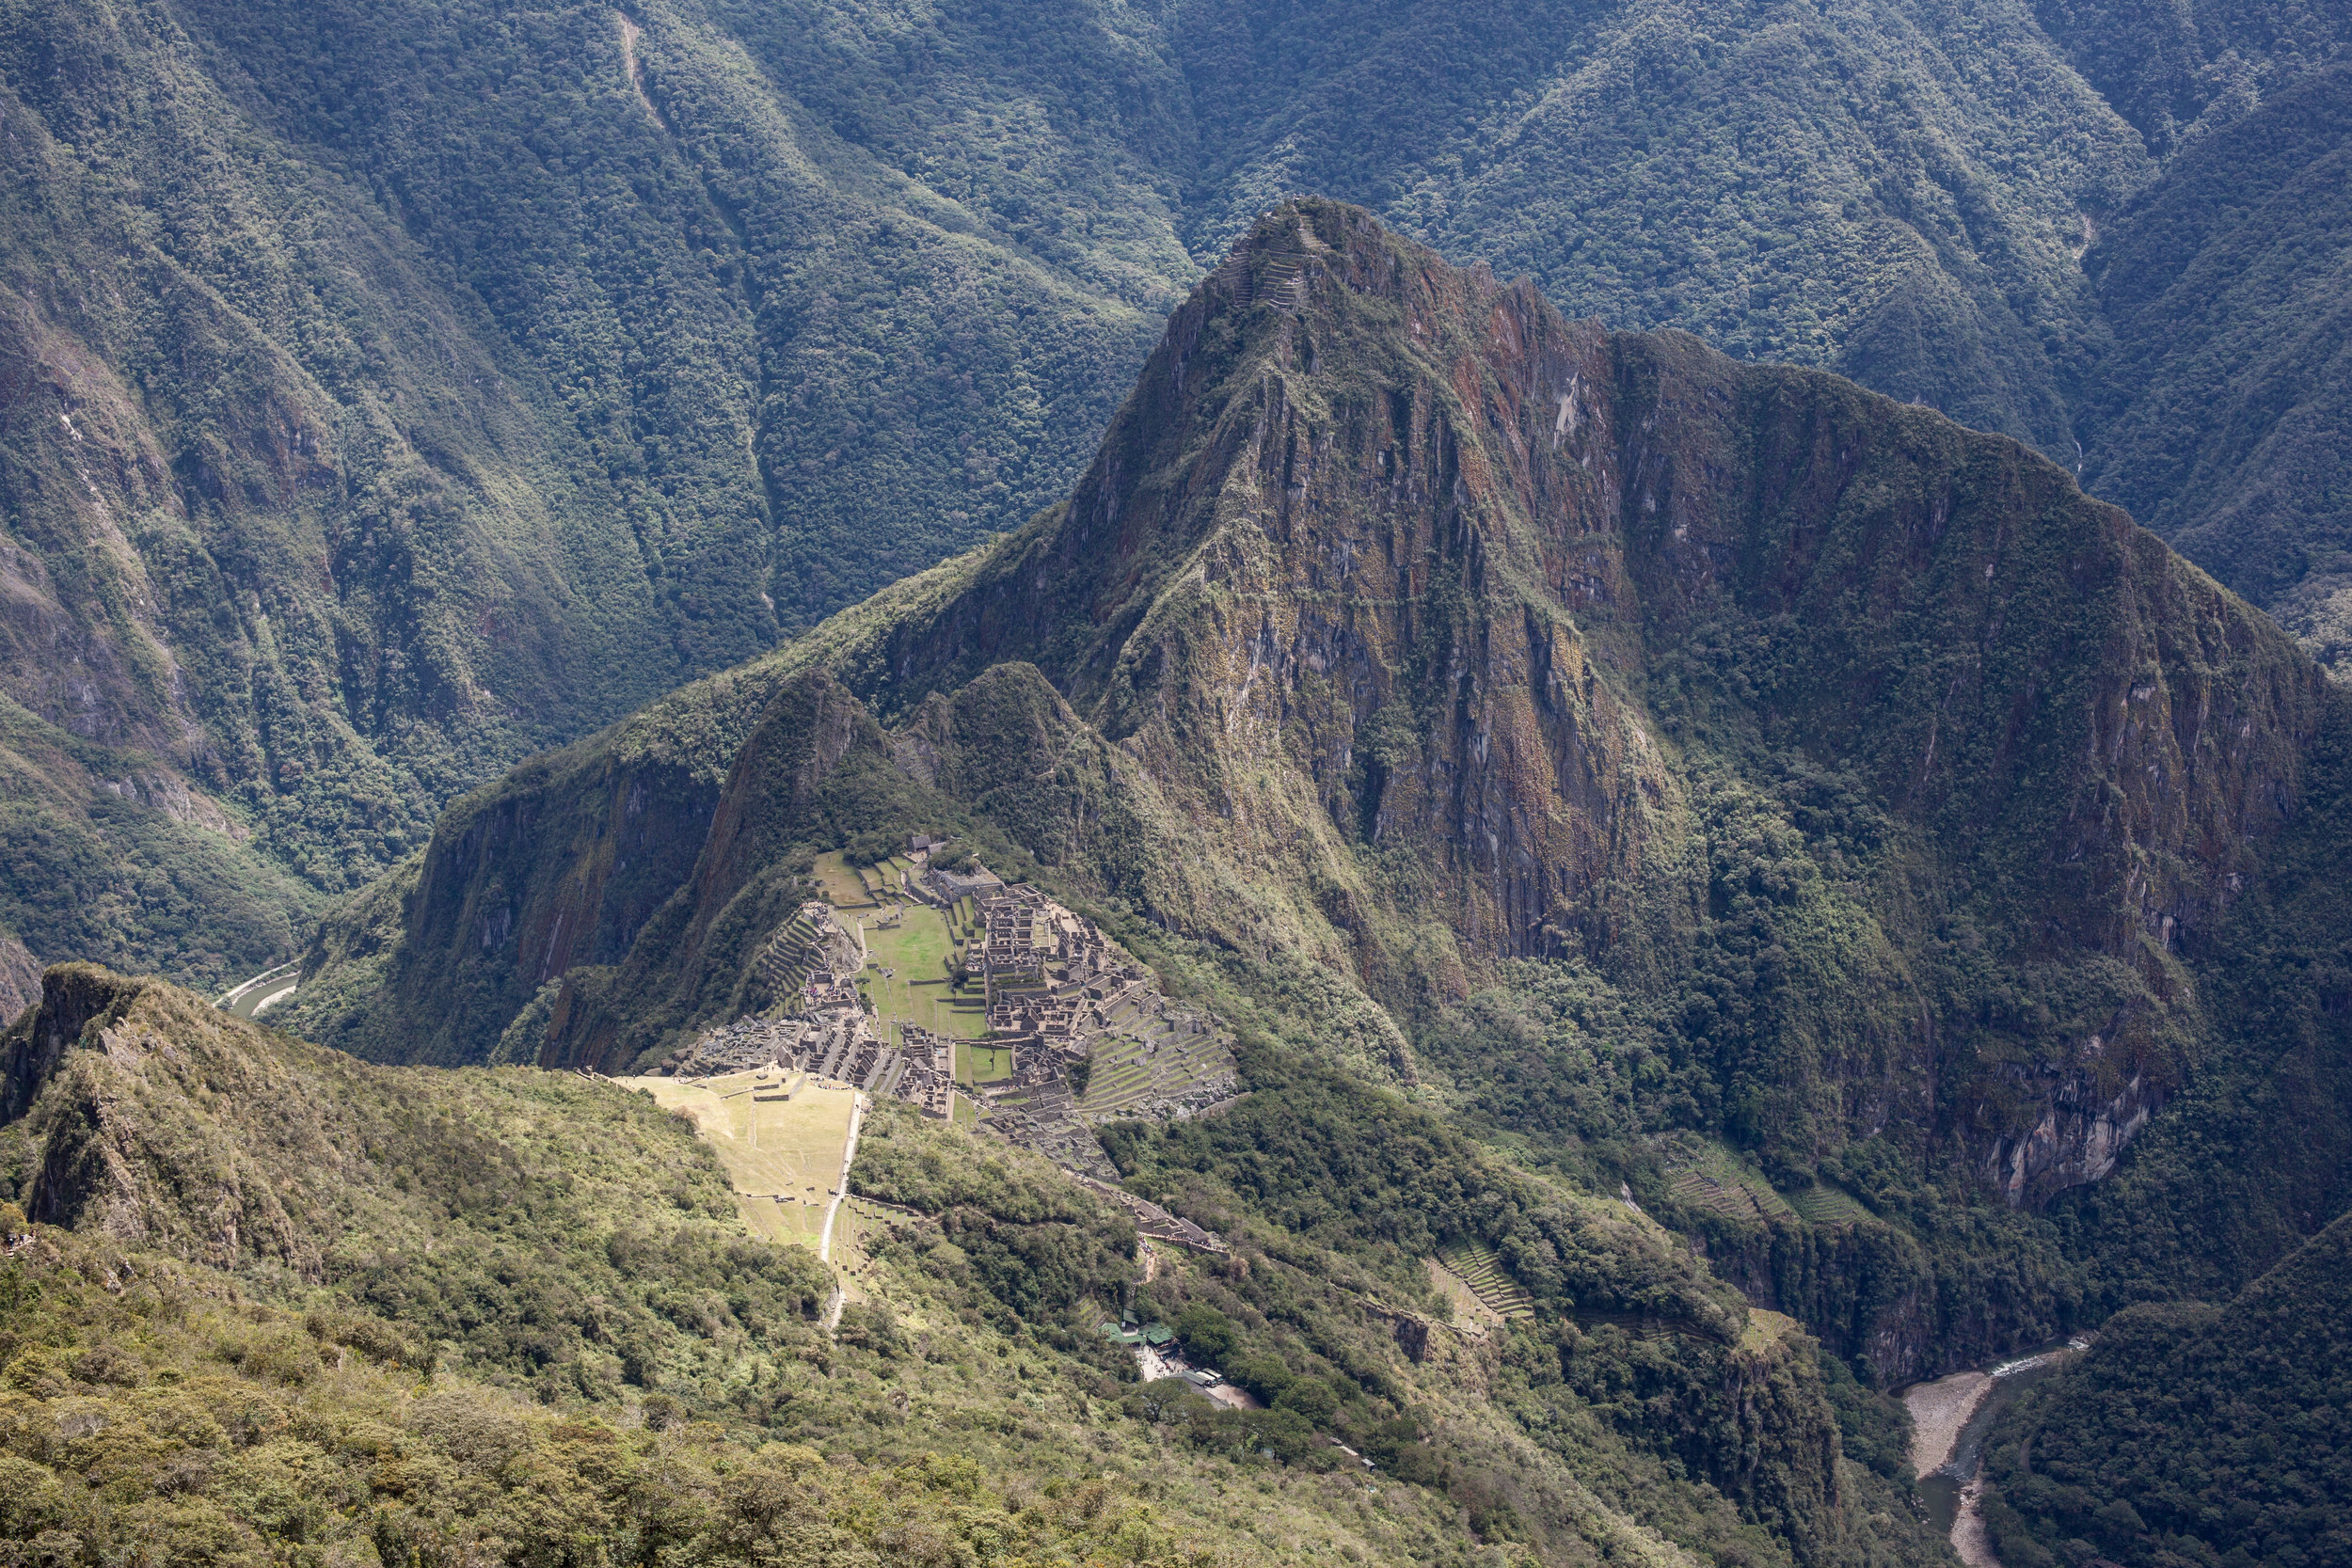 Looking down on Machu Picchu from Machu Picchu Mountain.